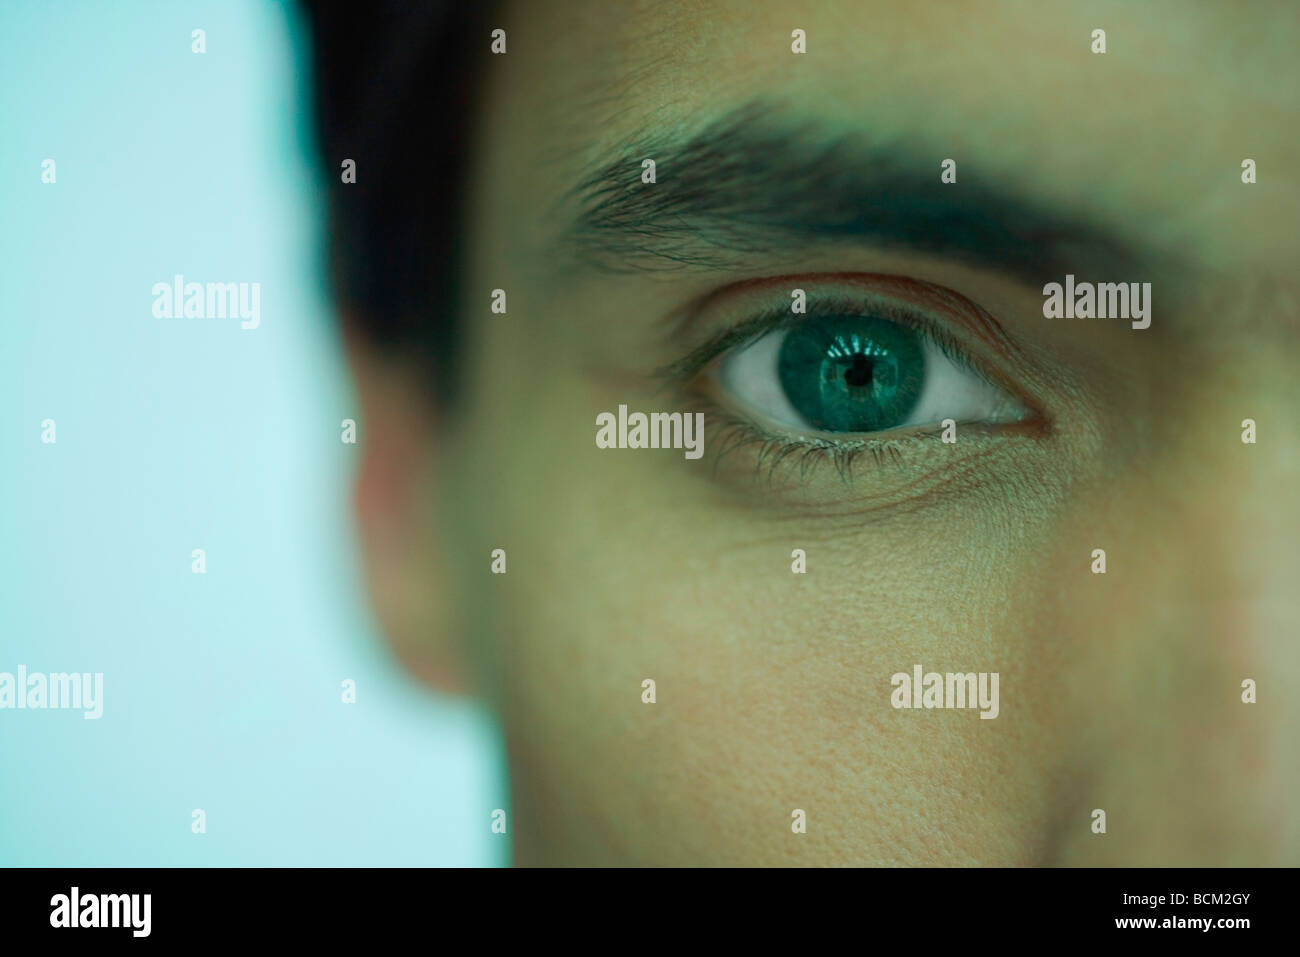 Man looking at camera, close-up of eye - Stock Image